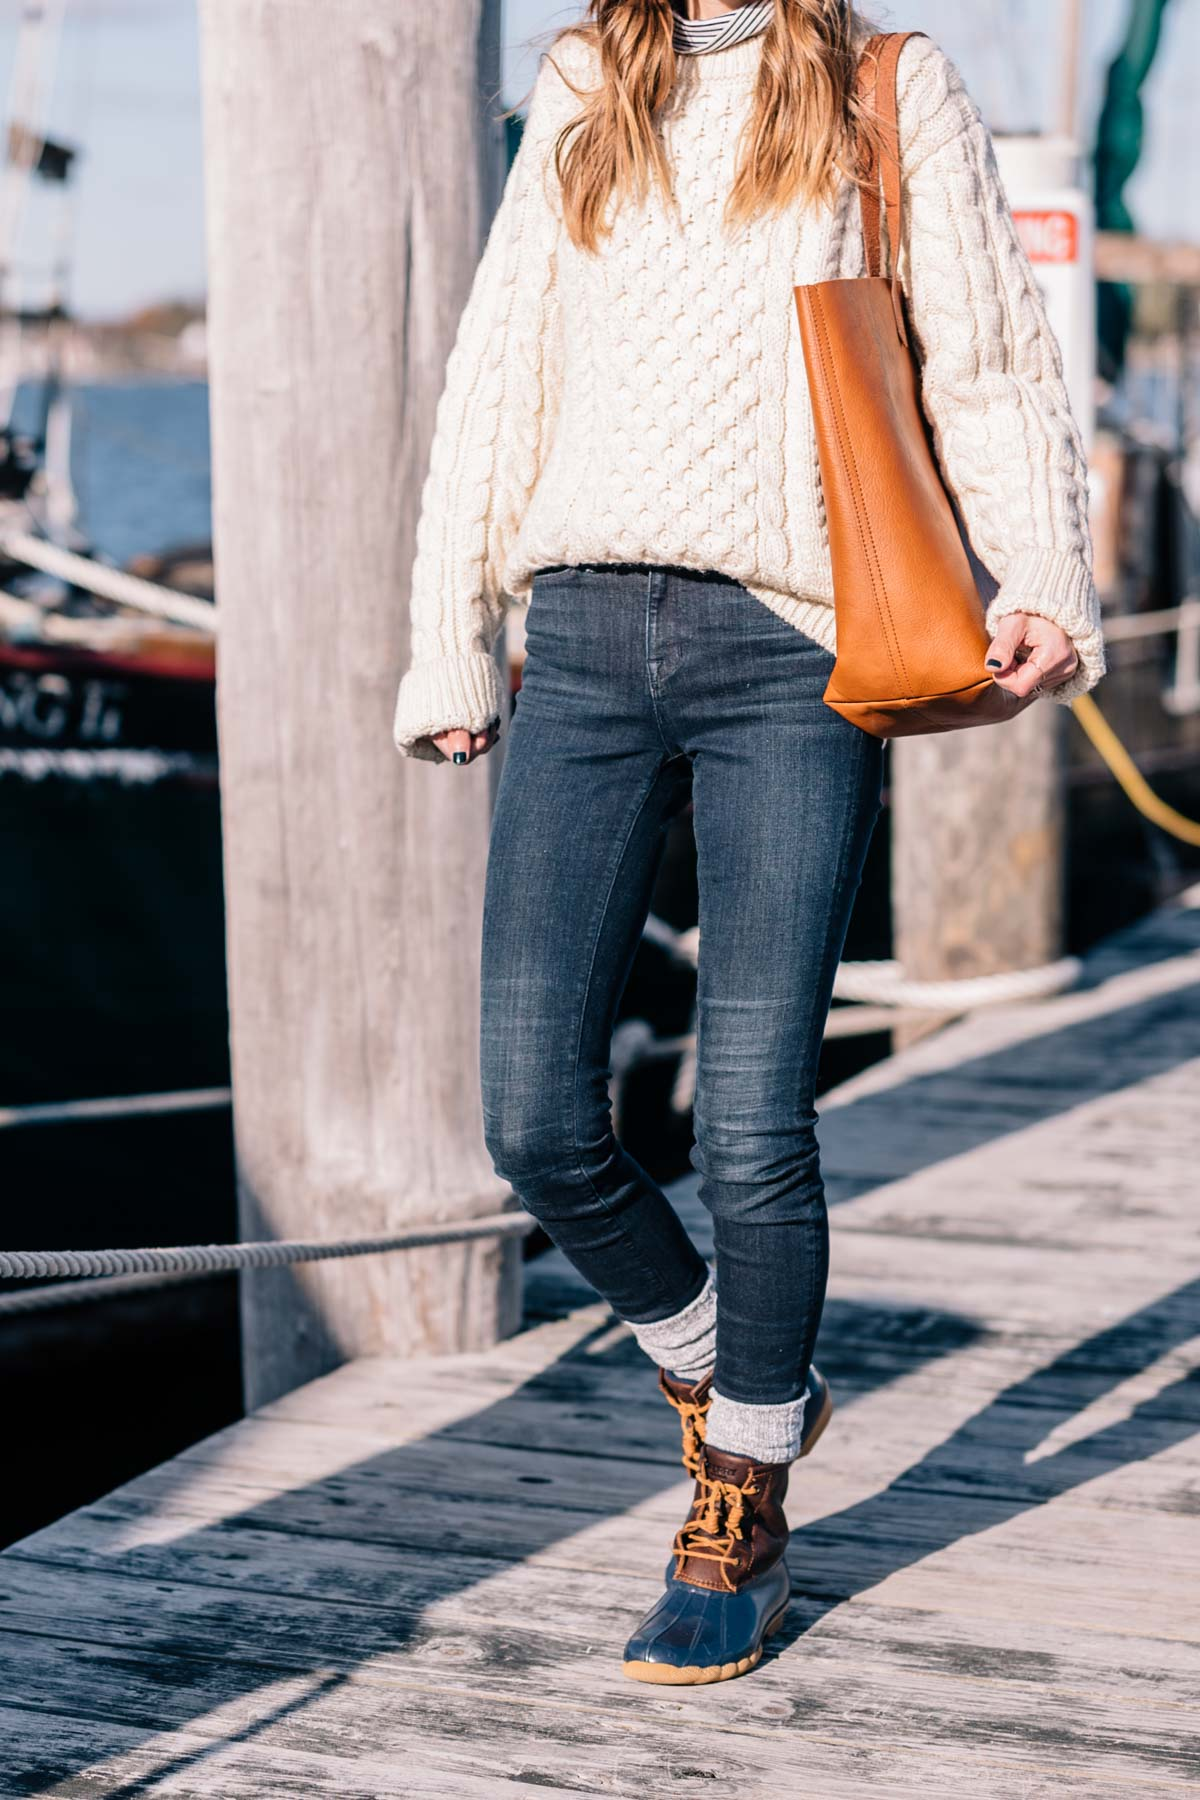 Jess Ann Kirby wears sperry duck boots and a LL Bean fisherman sweater with a made well tote to weather New England in the fall